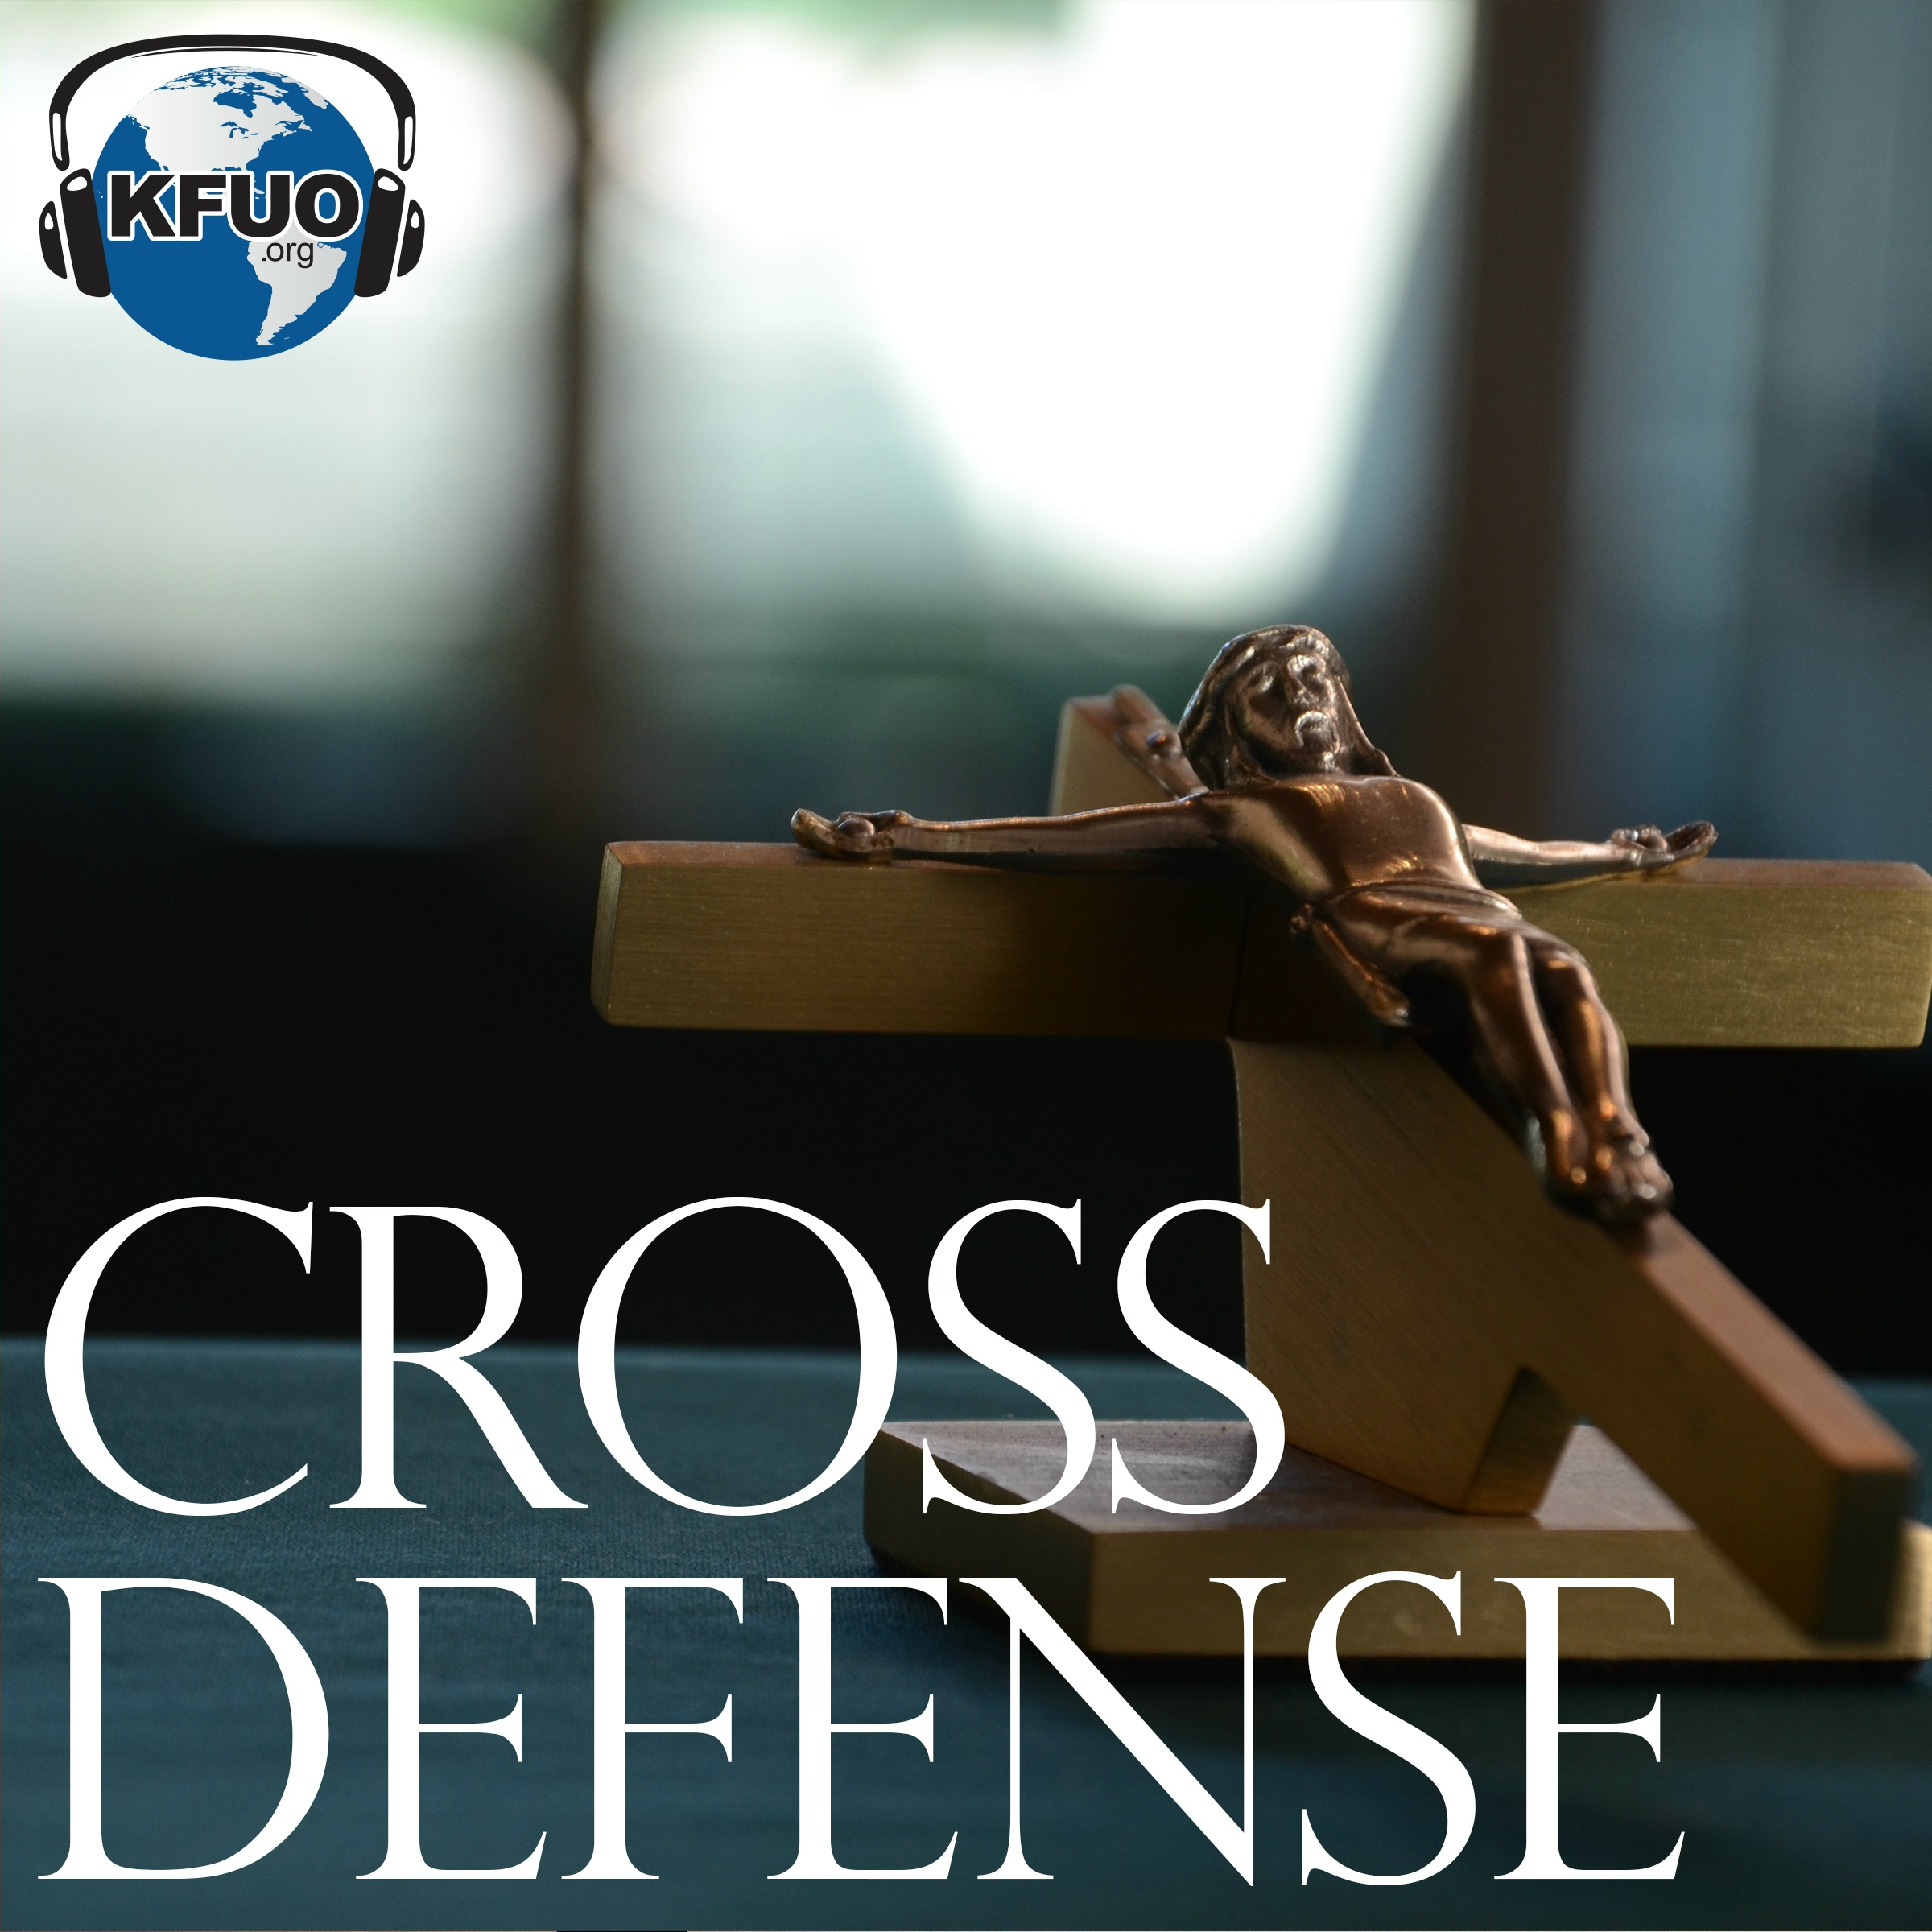 Cross Defense - KFUO